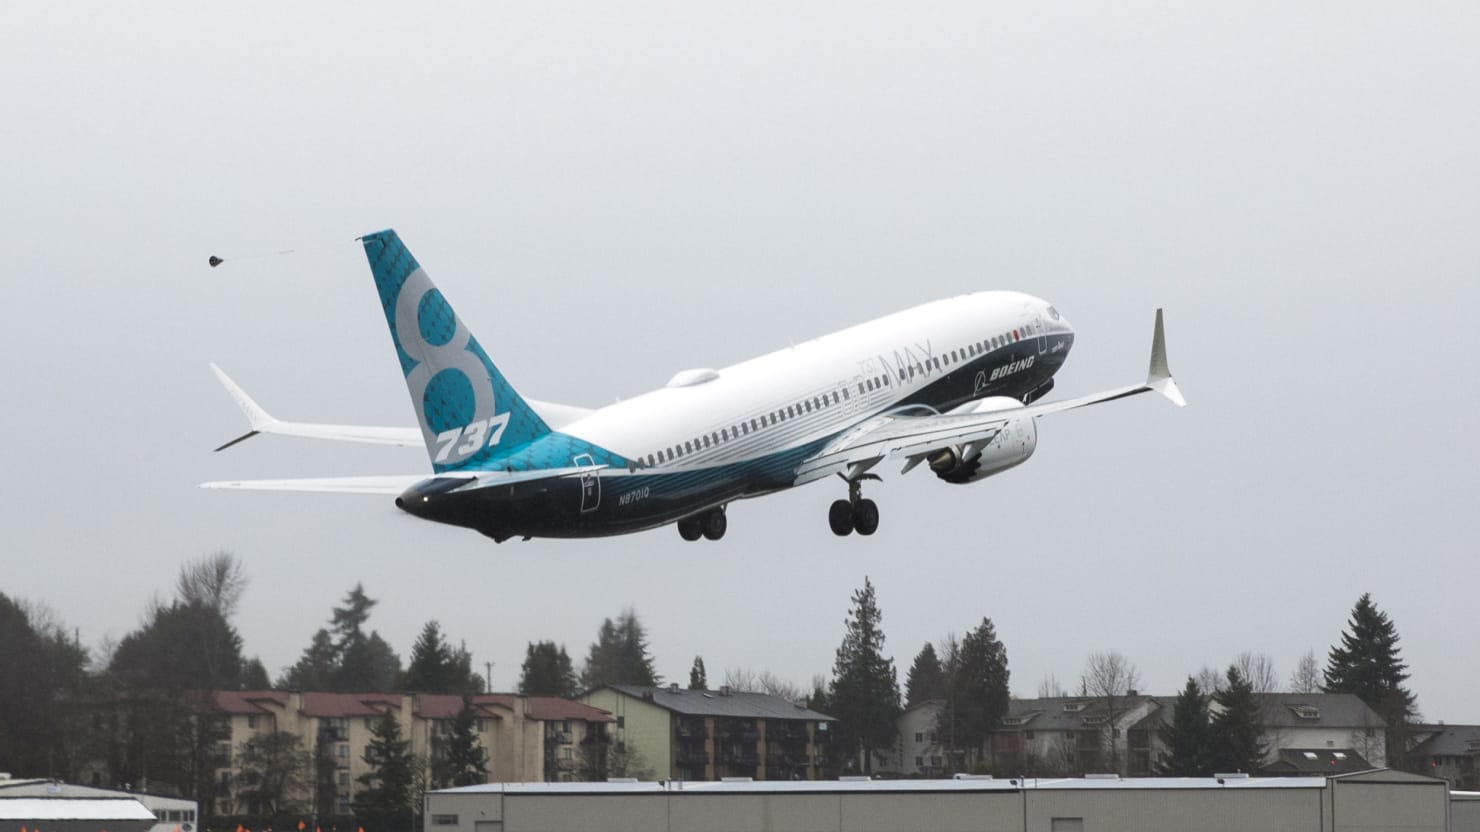 FAA Could Approve Boeing 737 Max to Fly Again by Late June, Says Reports